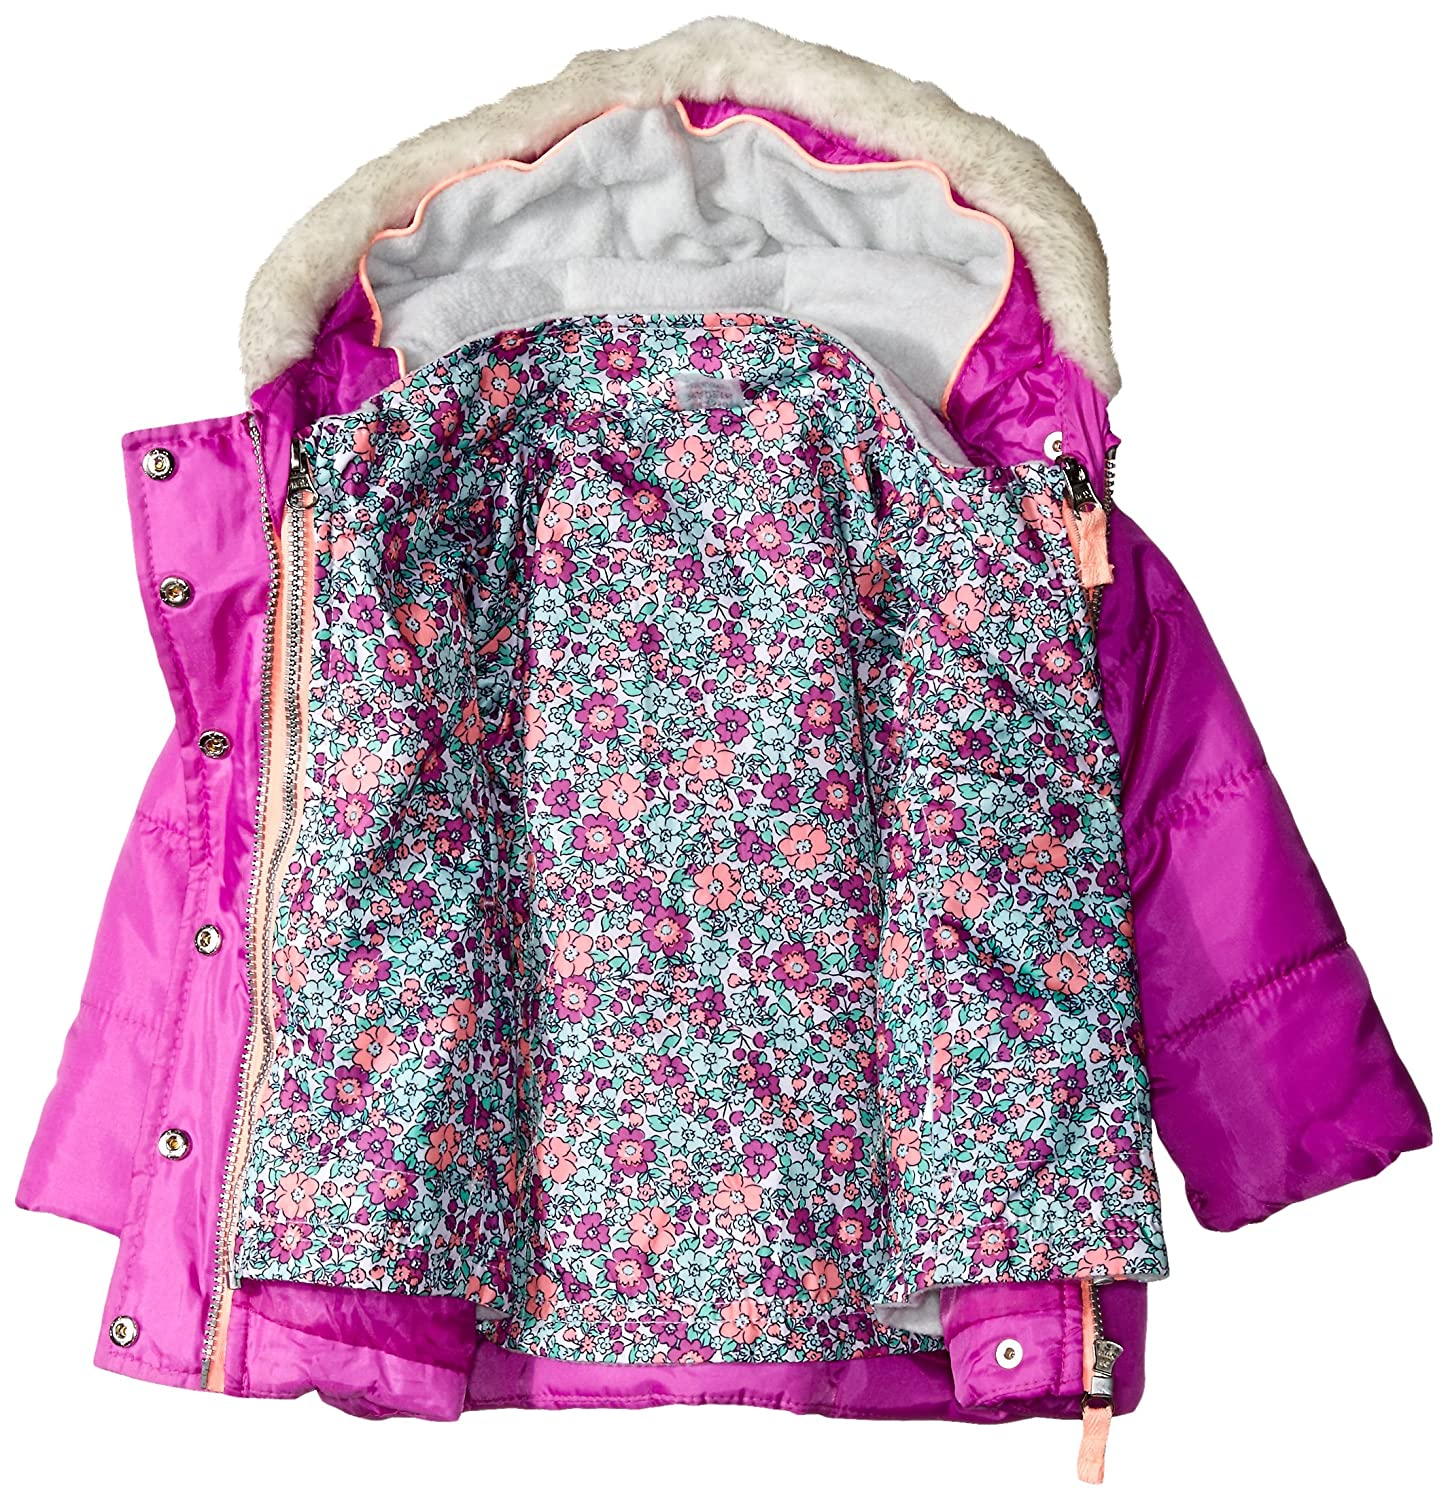 3312c22e7 Amazon.com  Carter s Baby Girls  Heavyweight Systems Jacket